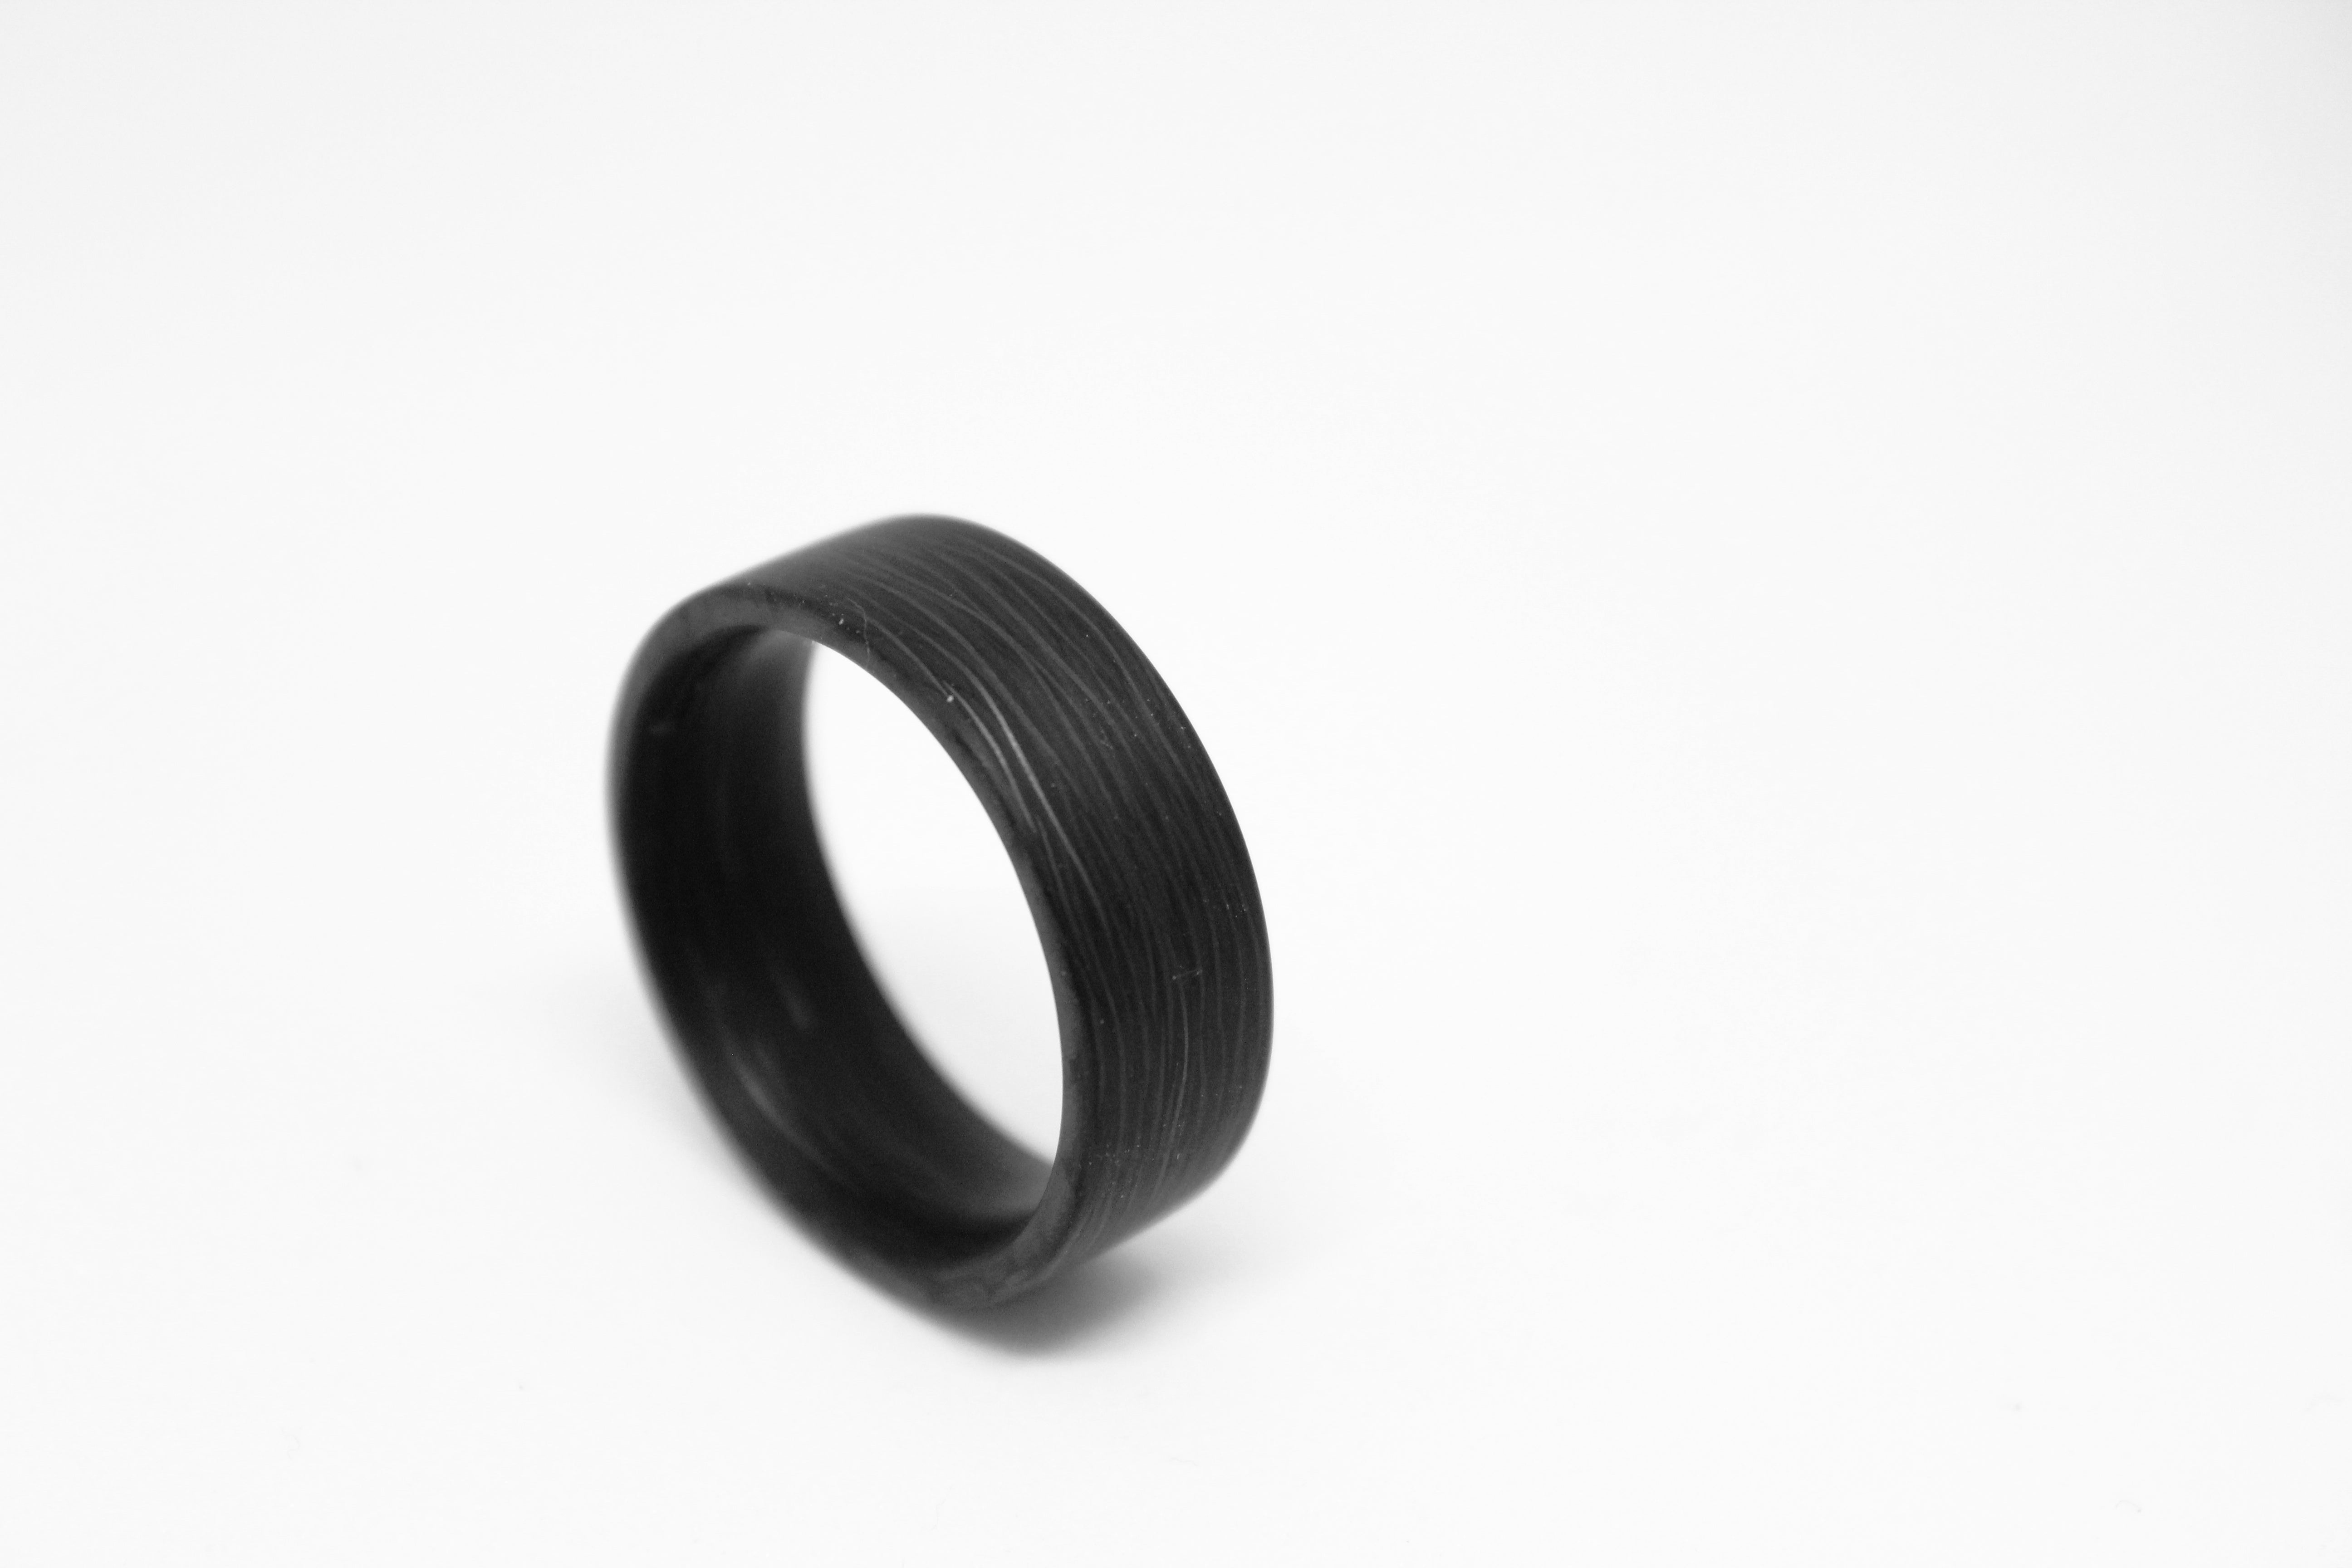 Size 15 Space X Carbon Fiber Ring